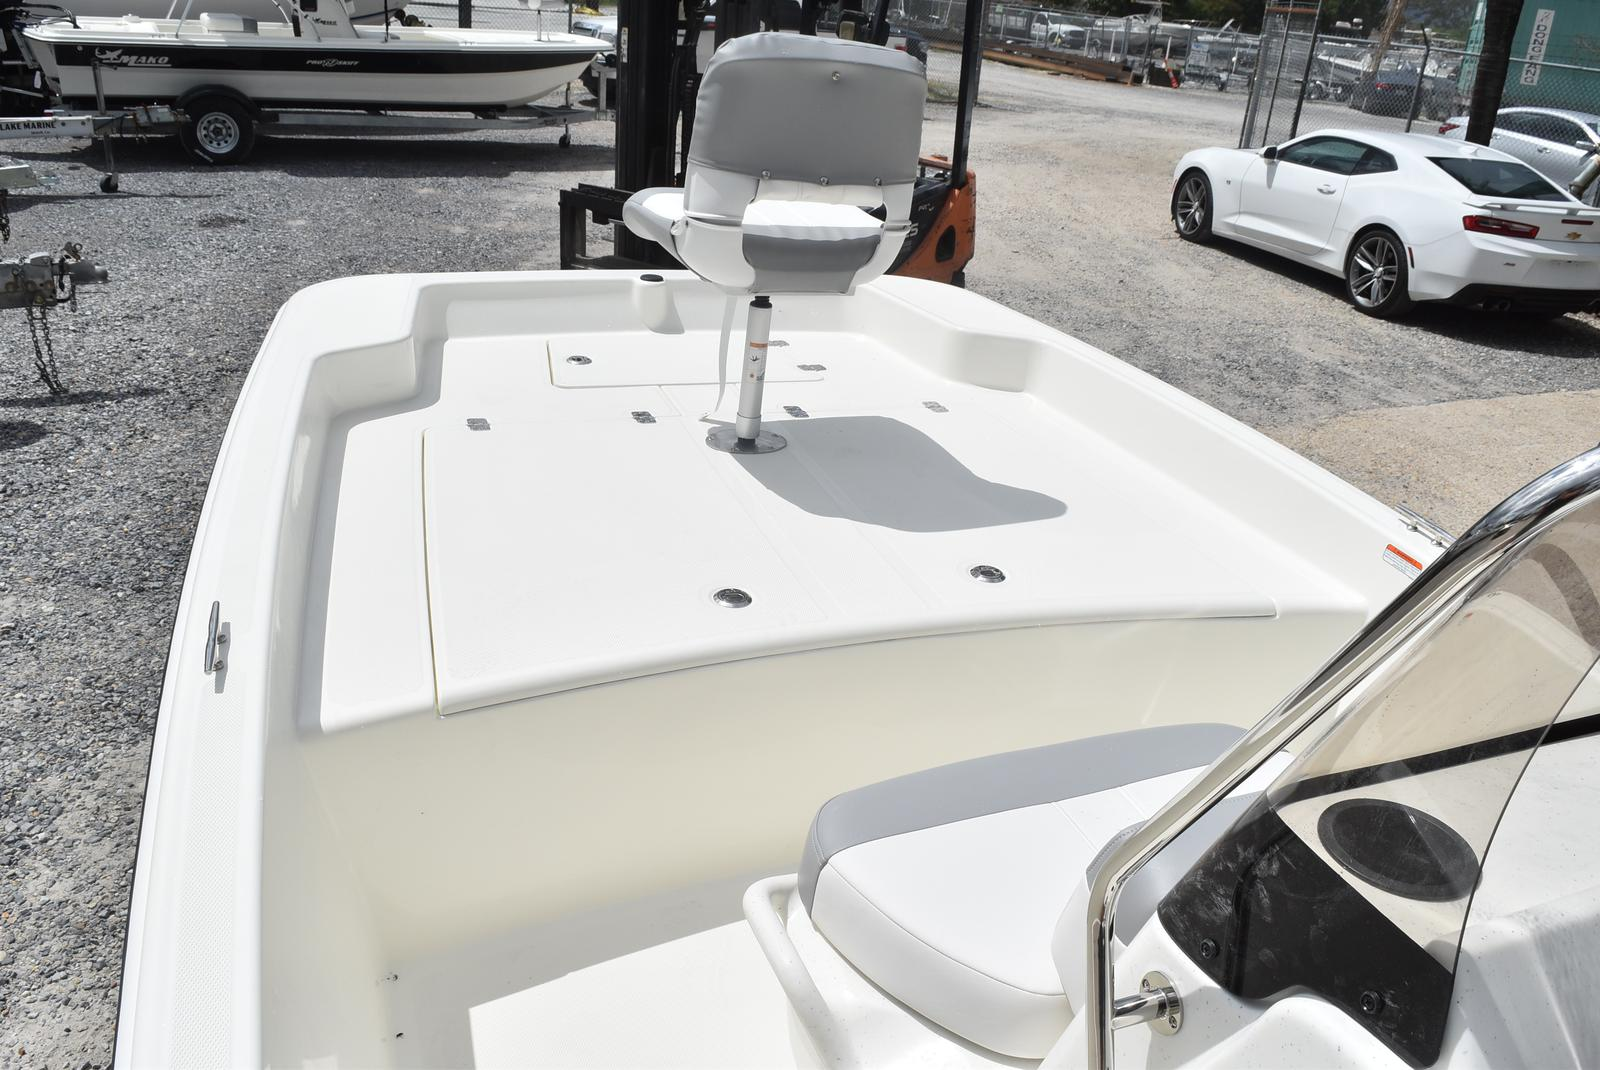 2020 Mako boat for sale, model of the boat is Pro Skiff 17, 75 ELPT & Image # 463 of 702